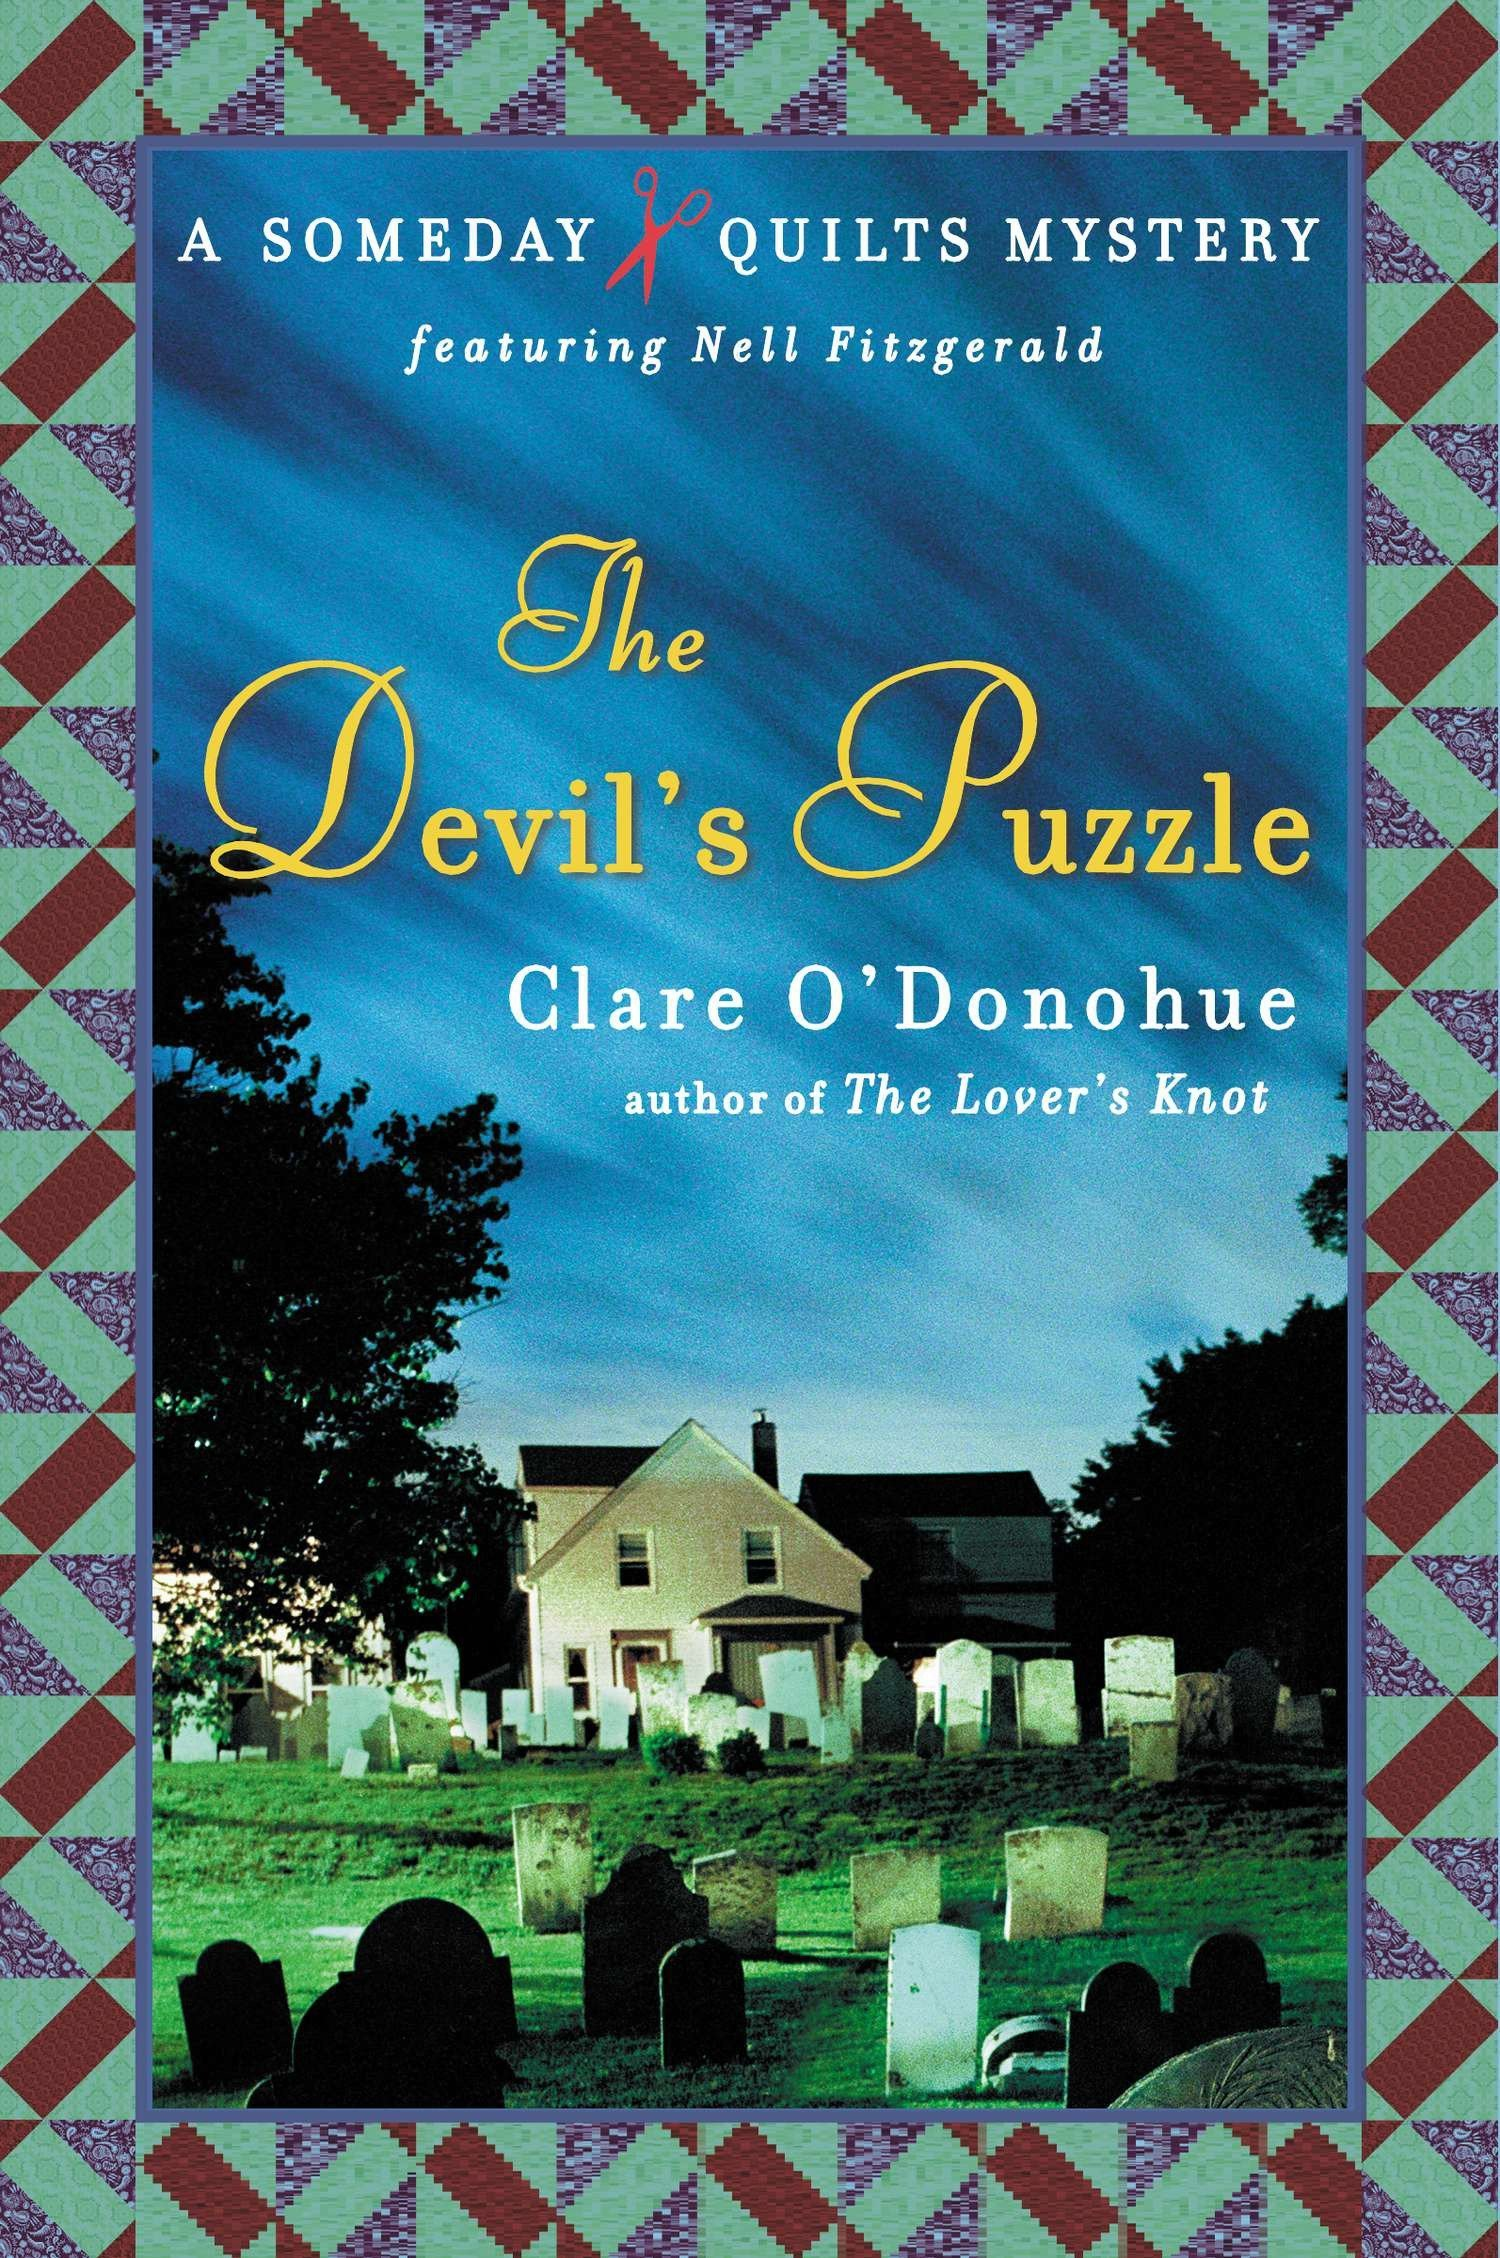 Amazon.com: The Devil\'s Puzzle: A Someday Quilts Mystery ...